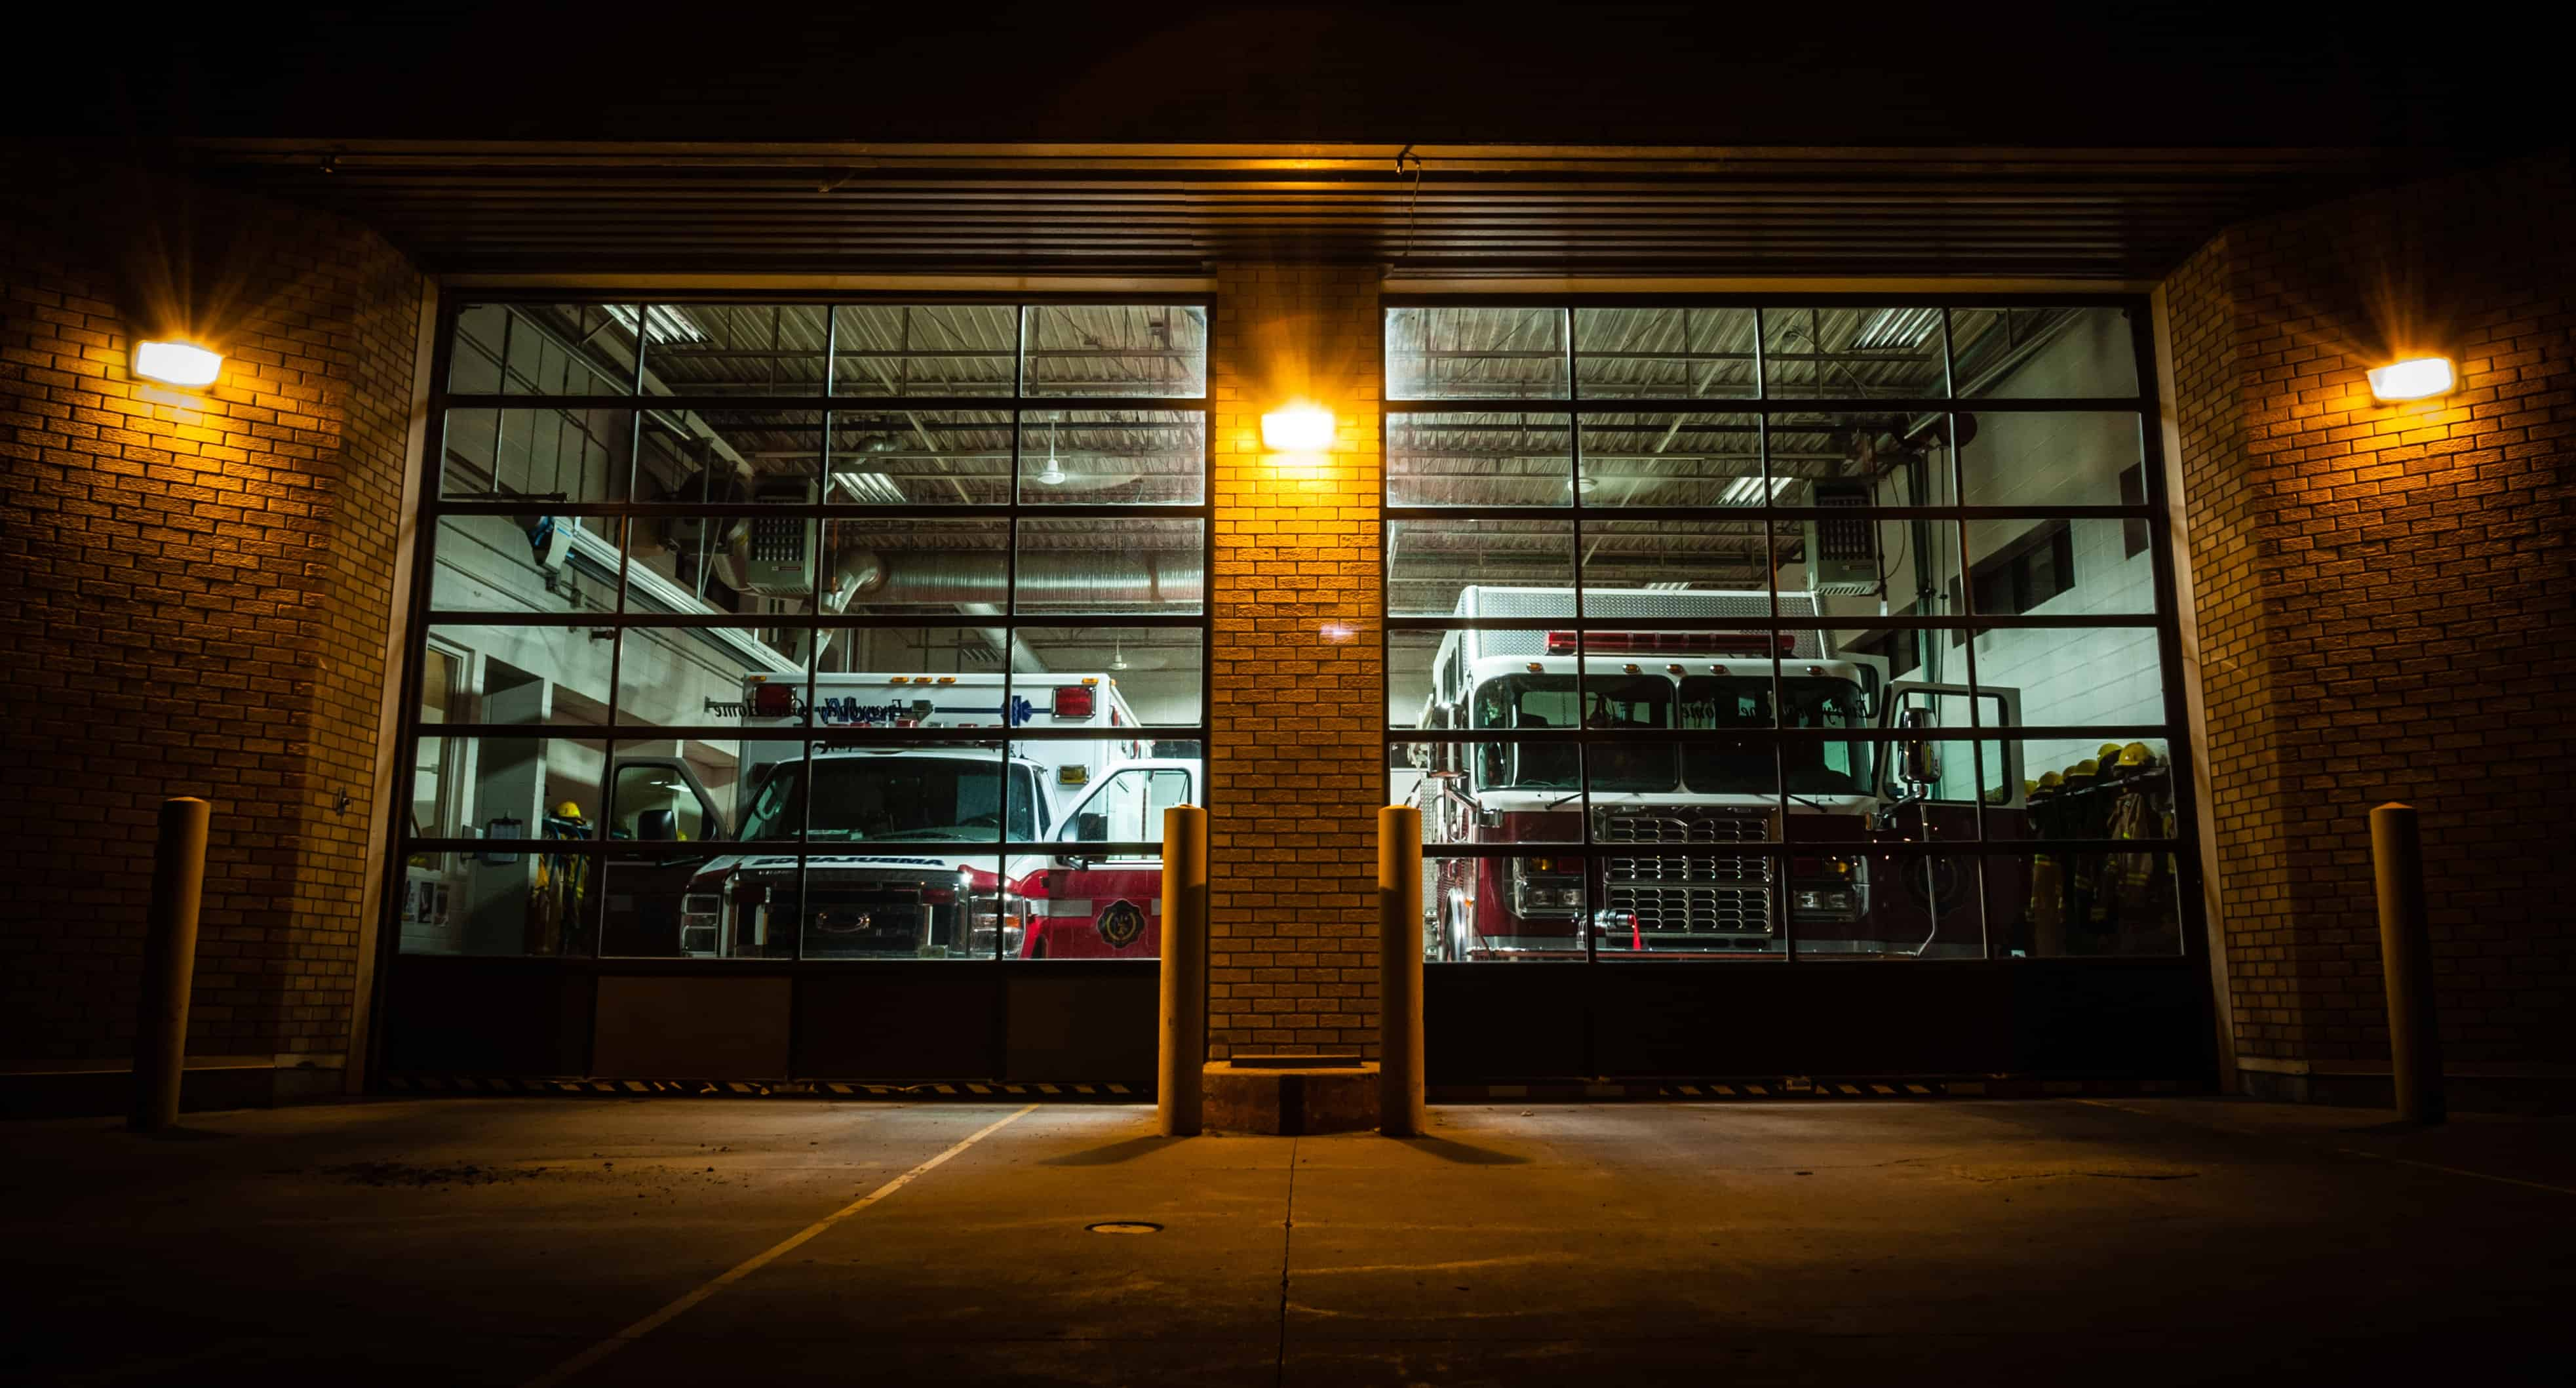 Emergency Vehicle Manufacturer Case Study